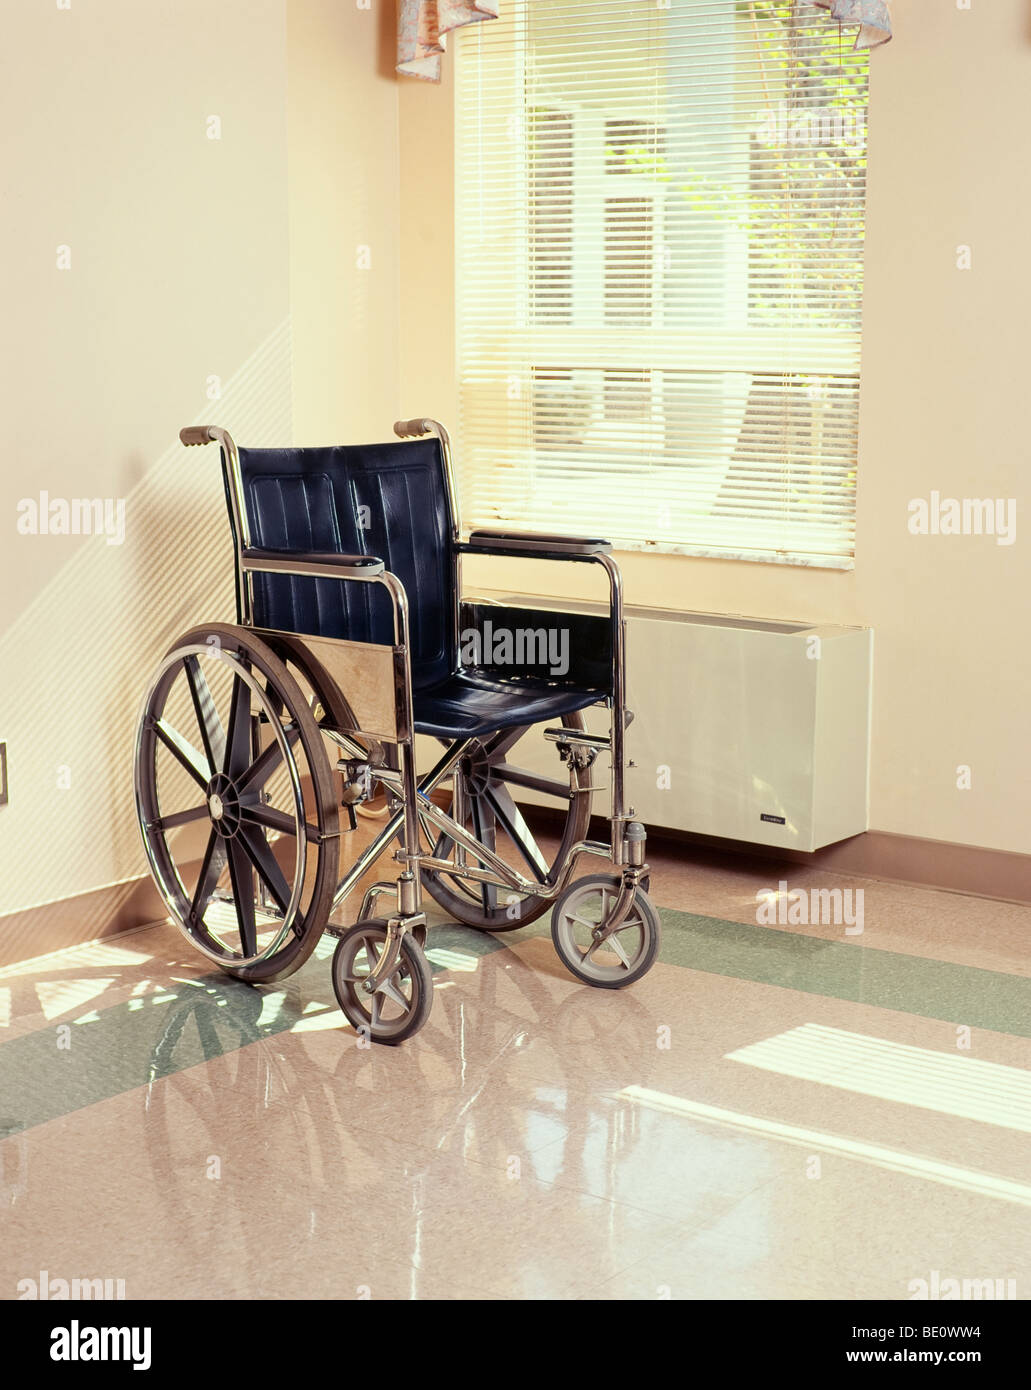 empty wheelchair sitting by window - Stock Image